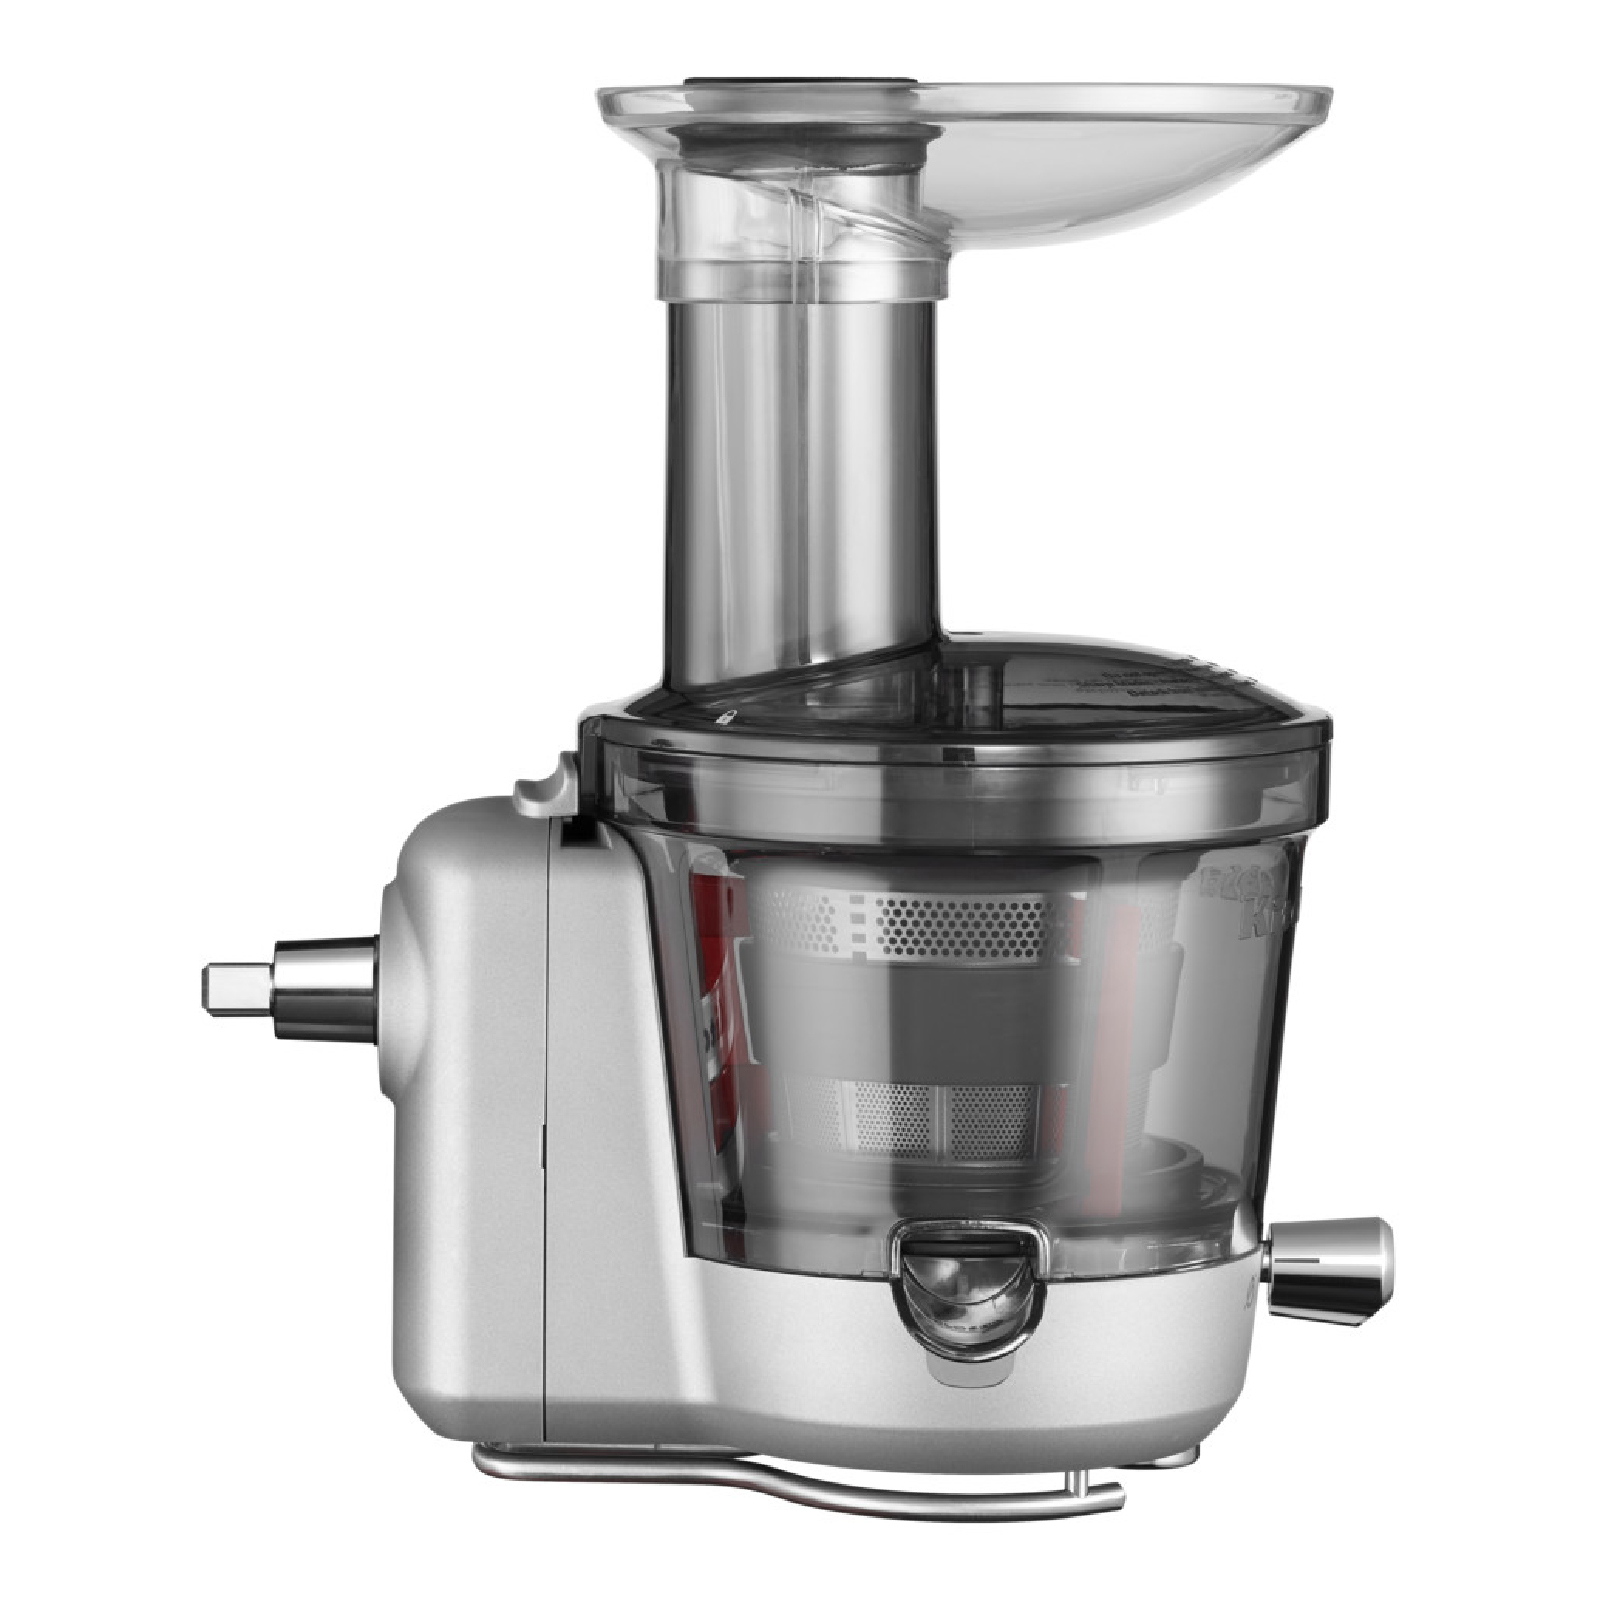 Kitchenaid Maximum Extraction Slow Juicer : KitchenAid 5KSM1JA Maximum Extraction Slow Juicer and ...